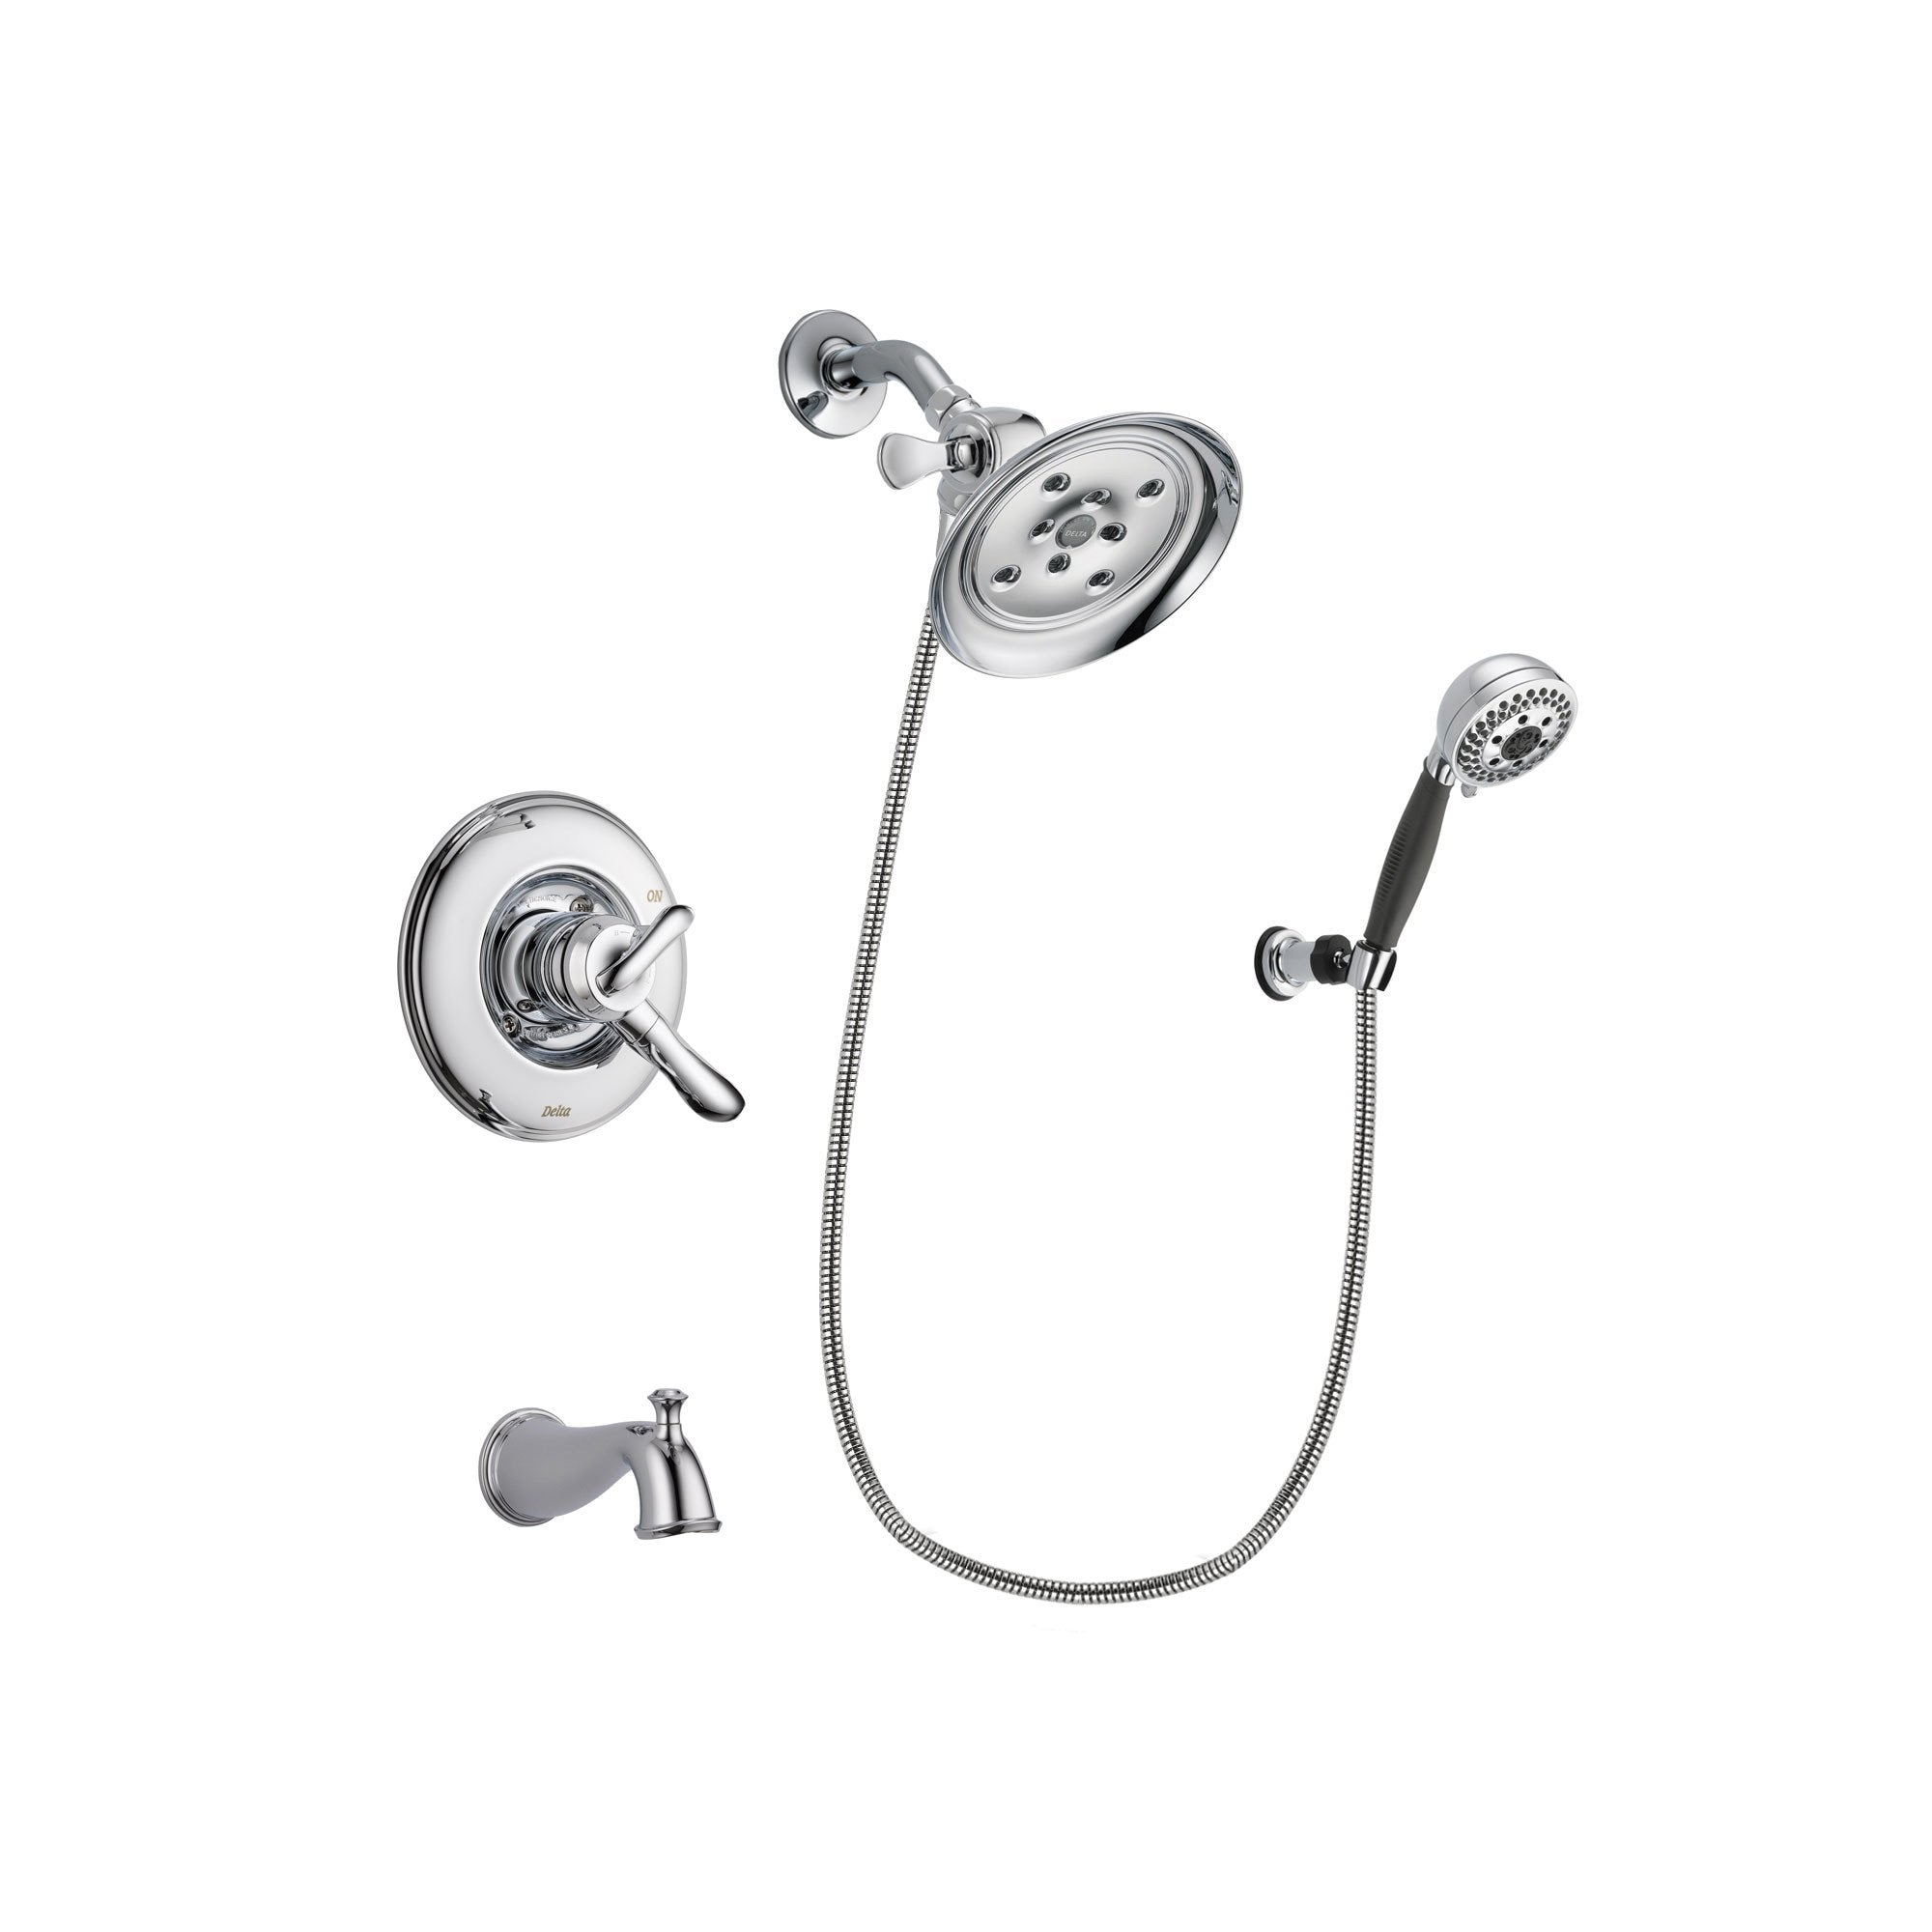 Delta Linden Chrome Tub and Shower Faucet System with Hand Shower DSP1203V